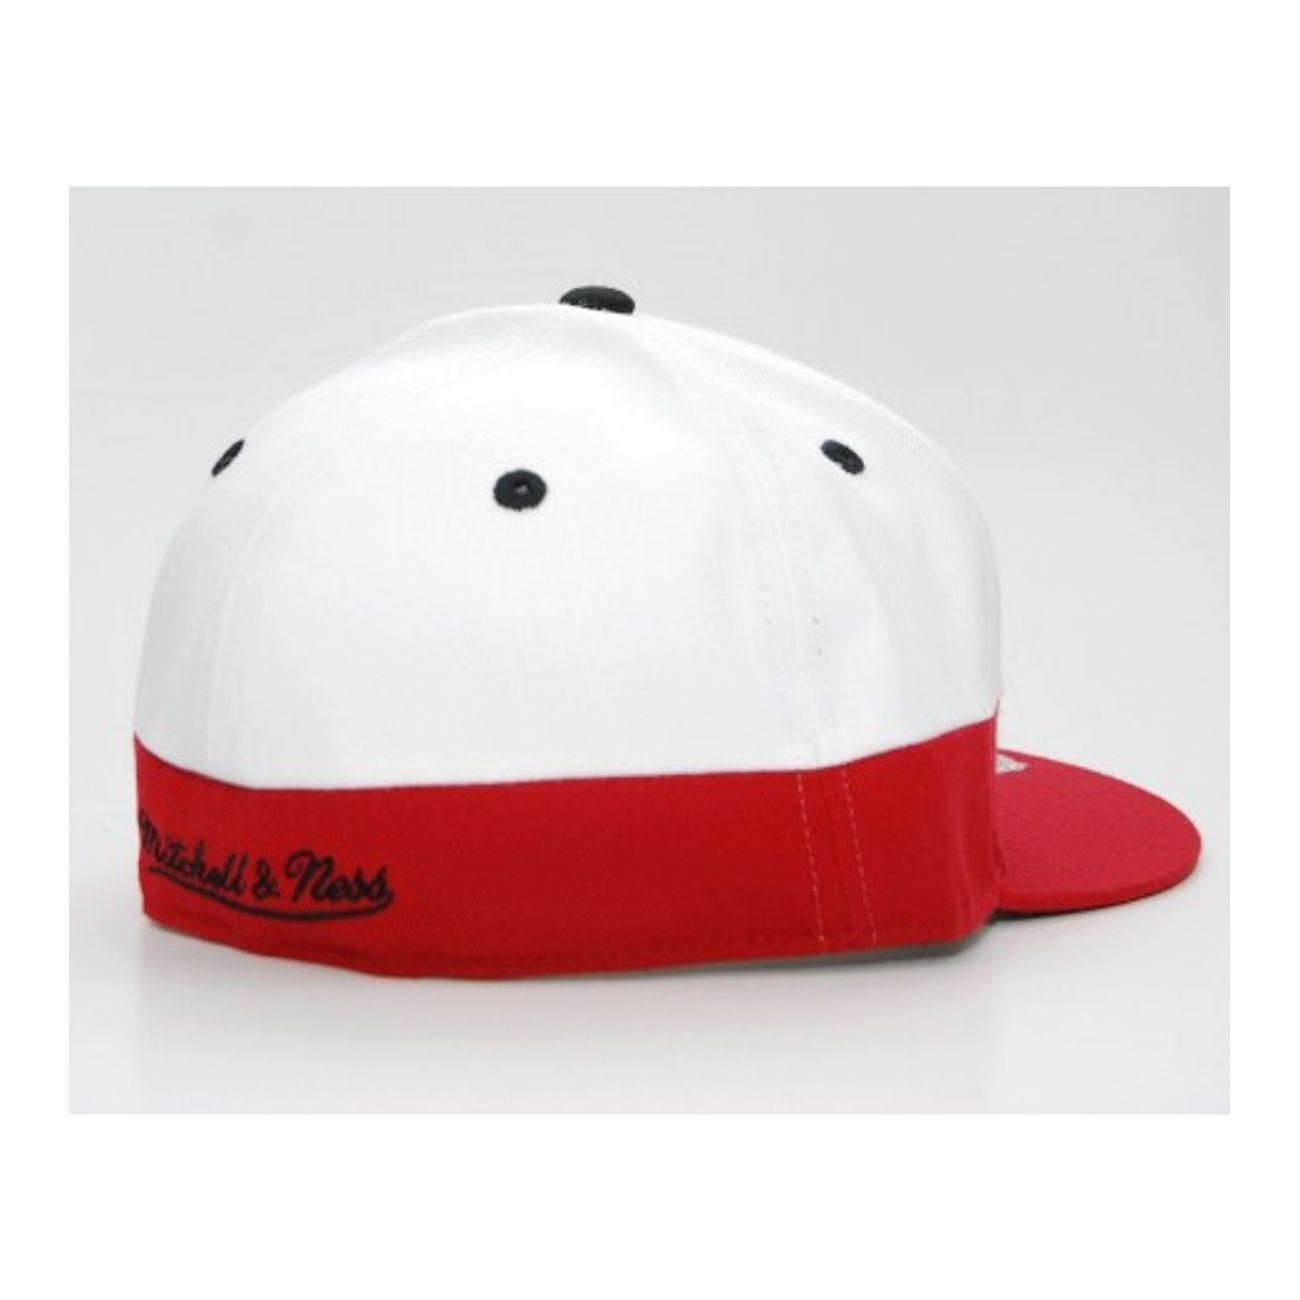 Mode- Lifestyle adulte MITCHELL AND NESS EXCLU! MITCHELL & NESS HEAT Miami Blanc / Rouge White Crown